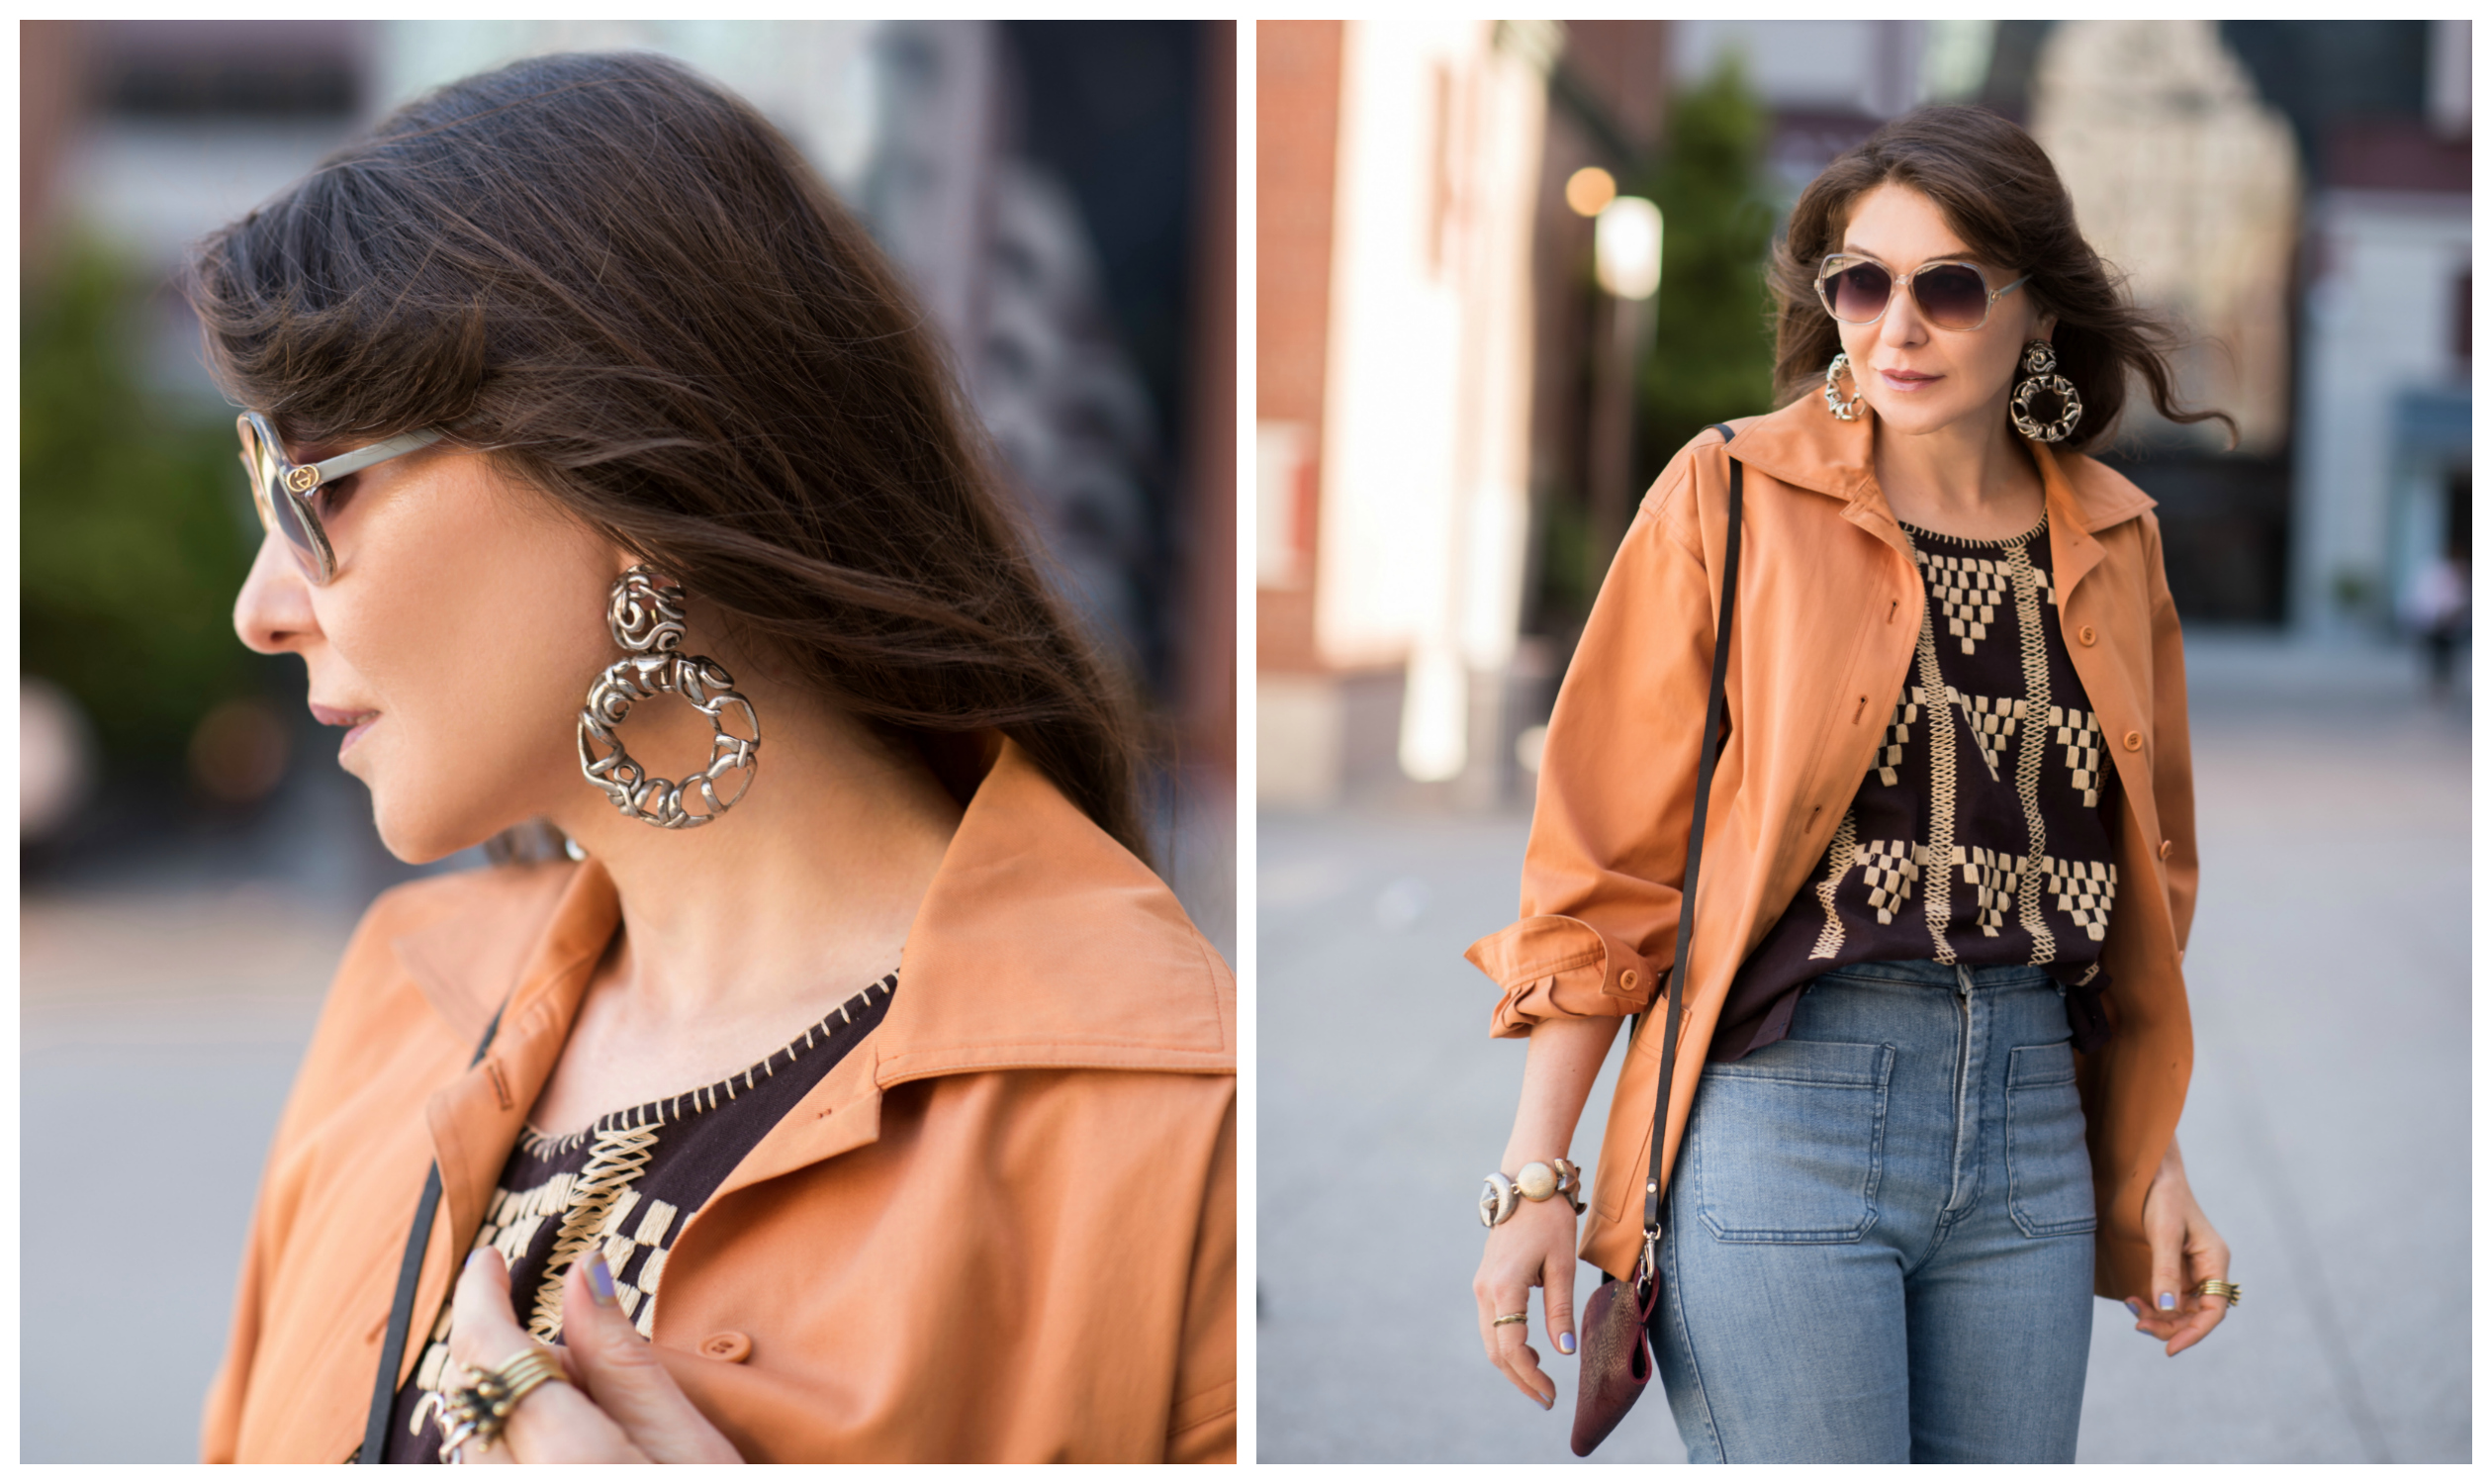 Sasha Maks Vintage flared jeans and embroidered top.